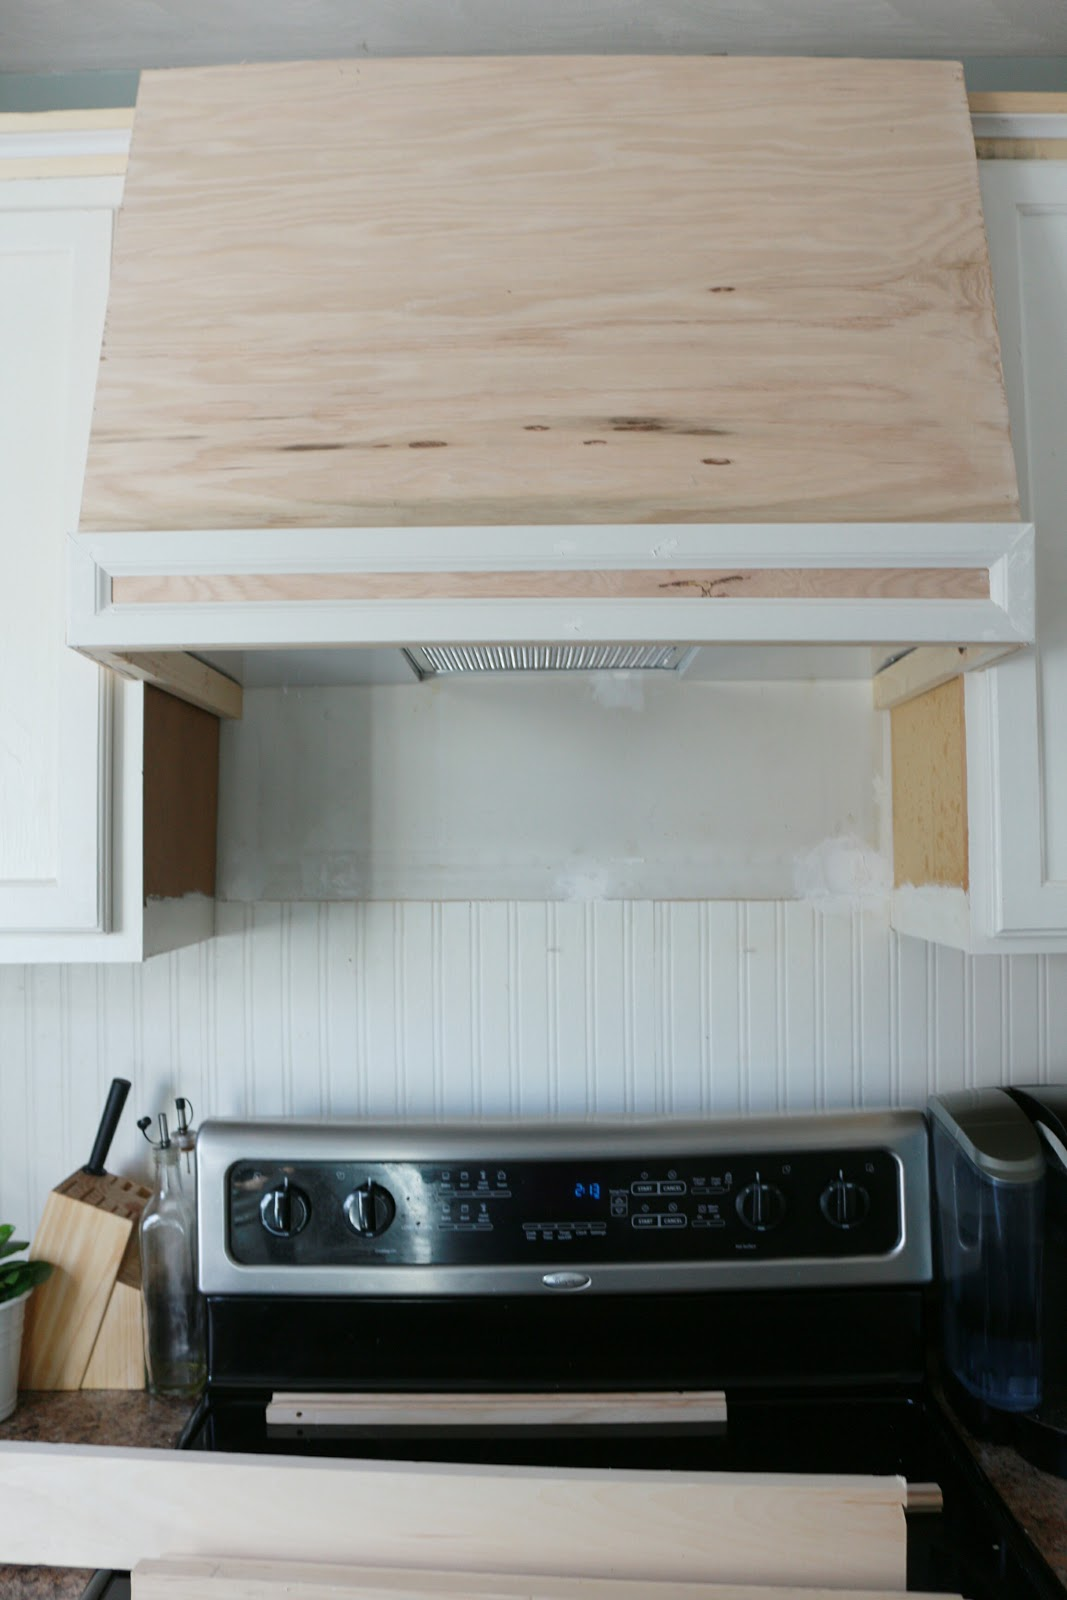 My DIY Kitchen: How I Built a Rangehood Over an Existing Cabinet ...